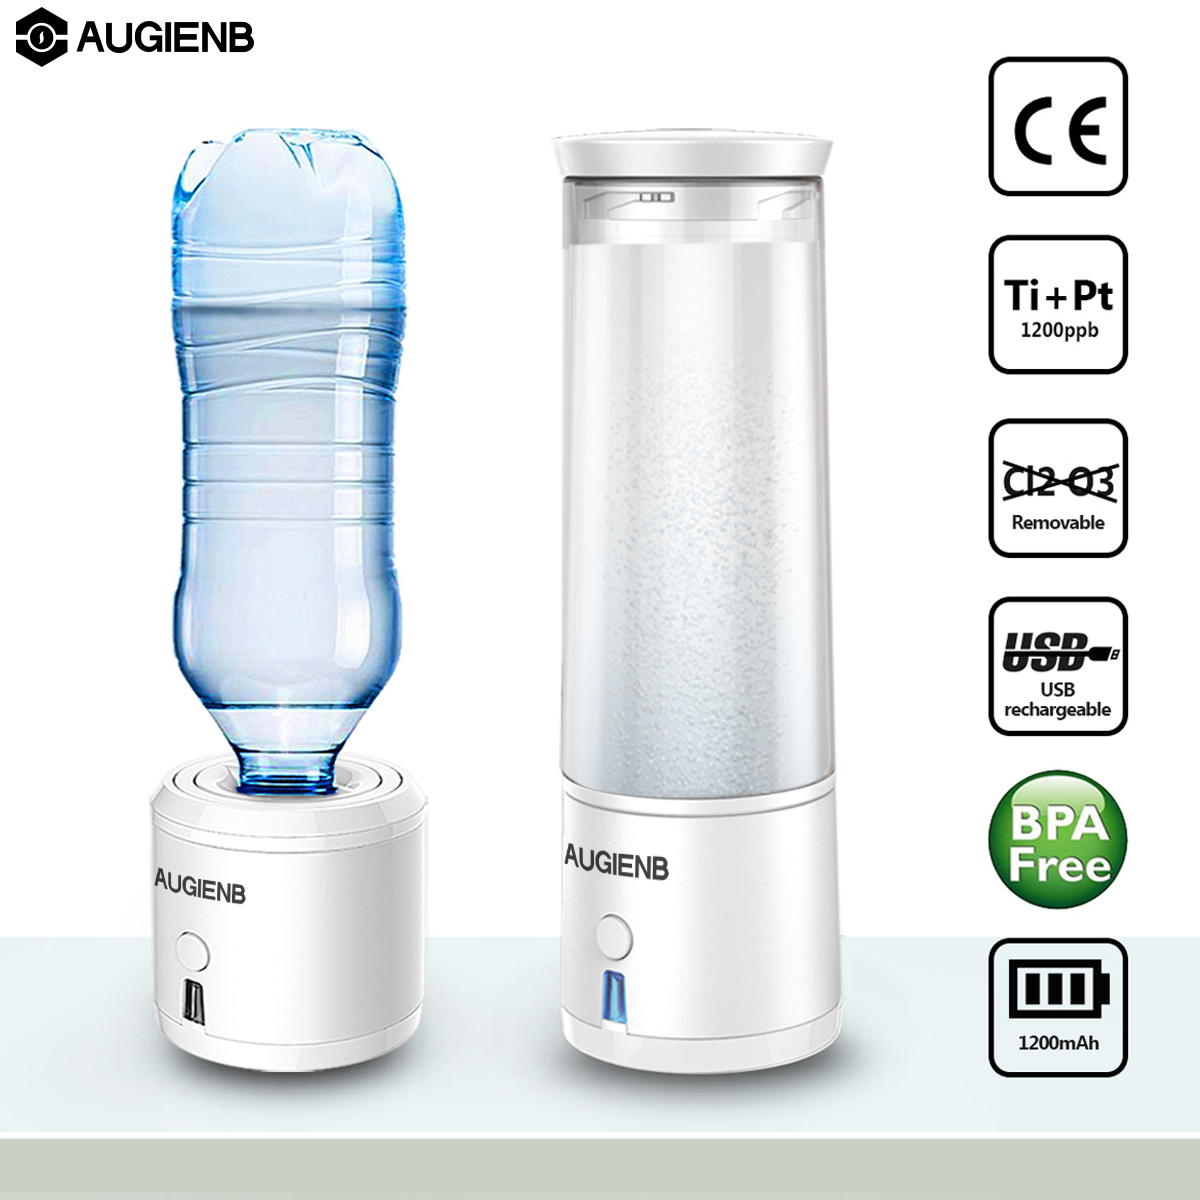 AUGIENB SPE/PEM Membrane H2 Rich Hydrogen Water Bottle Electrolysis Ionizer Generator USB Rechargeable removal O3 CL2 цена